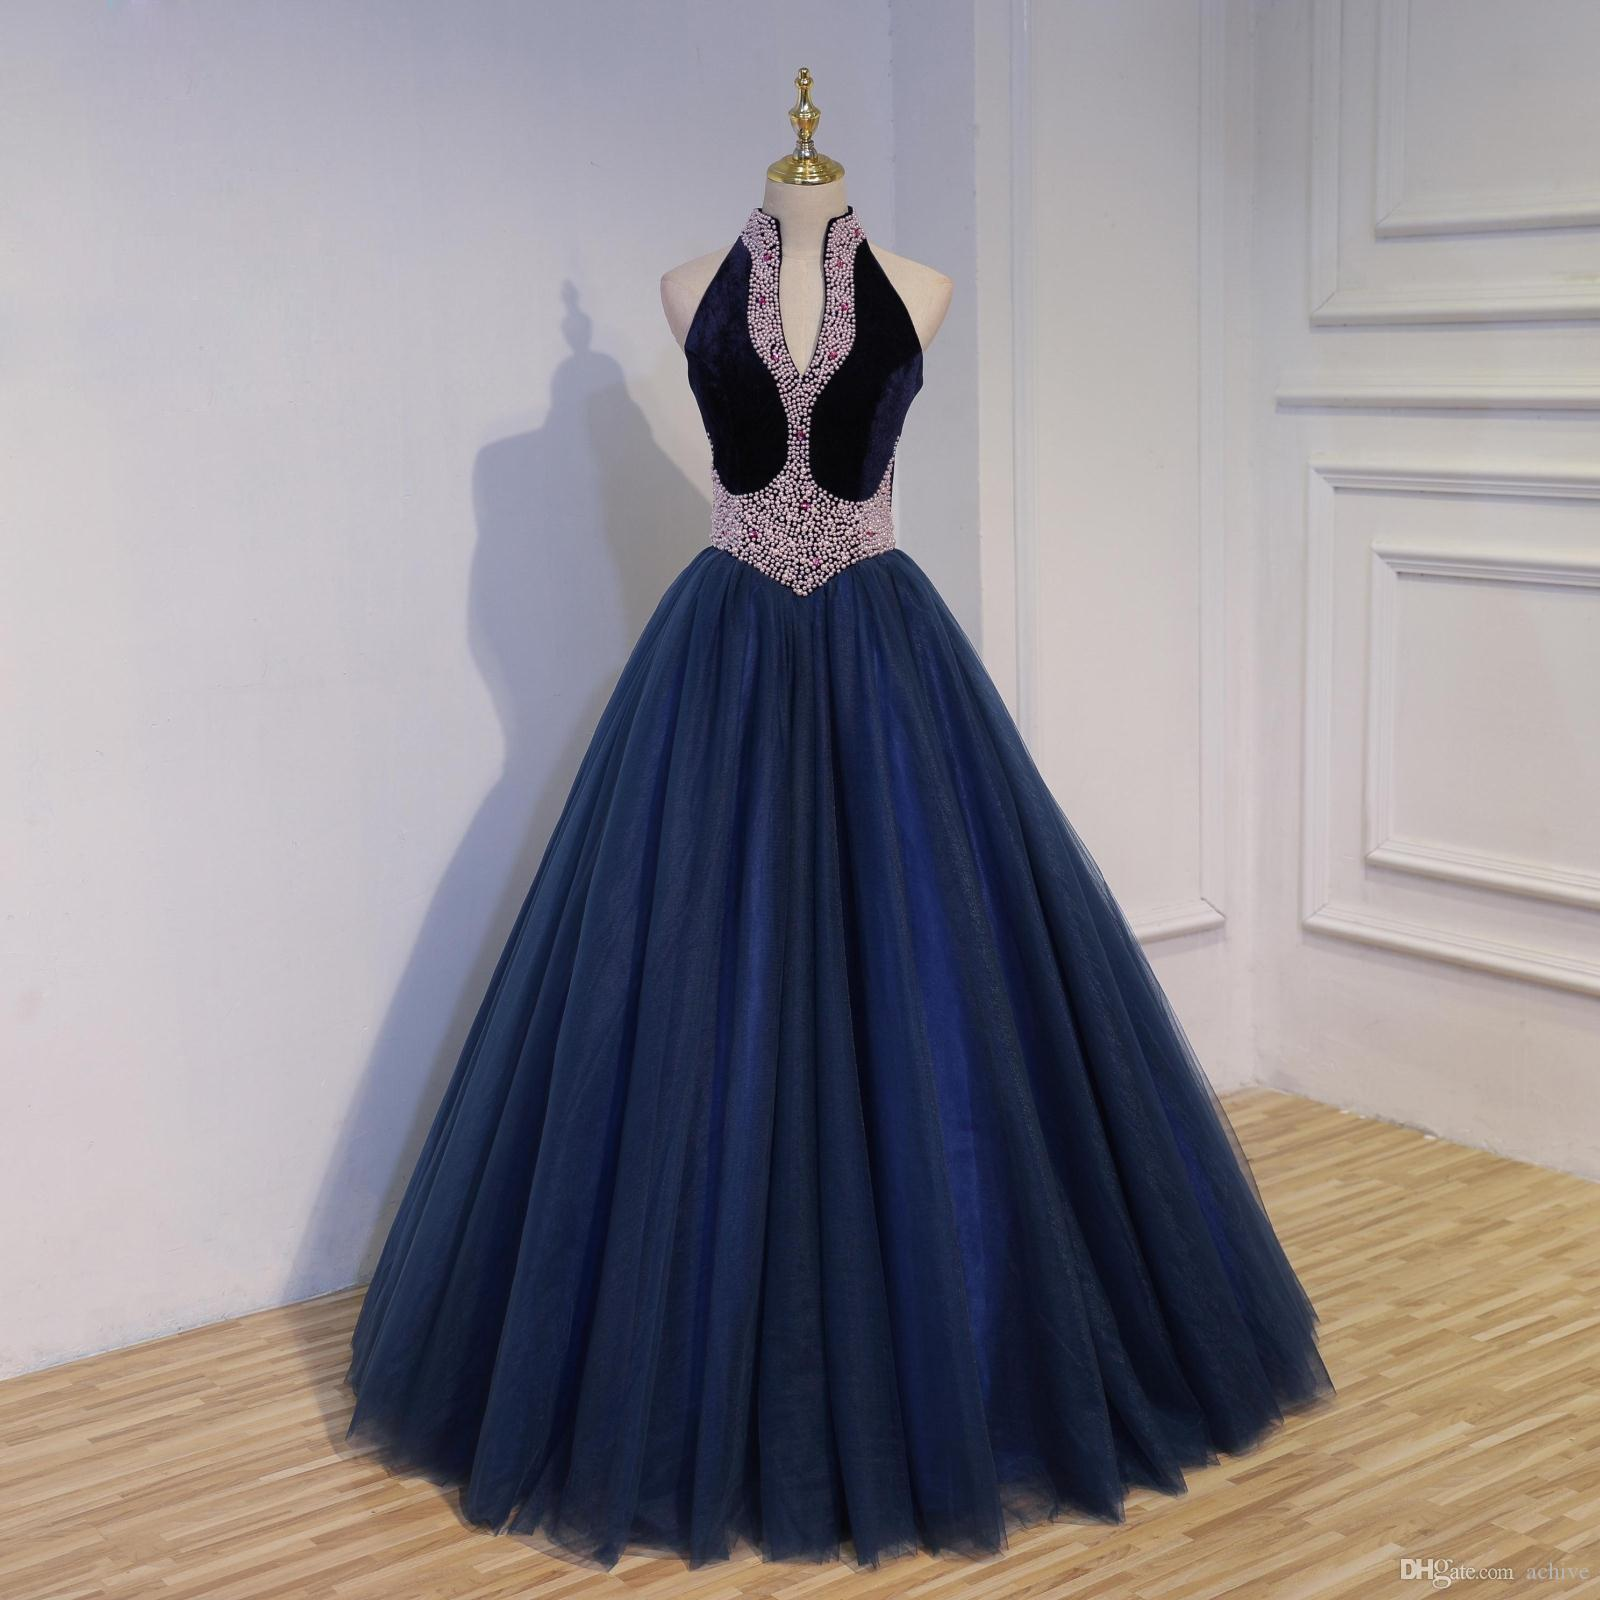 Real Vintage Dark Navy Evening Dresses 2018 Halter Beaded Pearls Crystal Ball Gown Prom Dresses Formal Corset Debutante Gowns